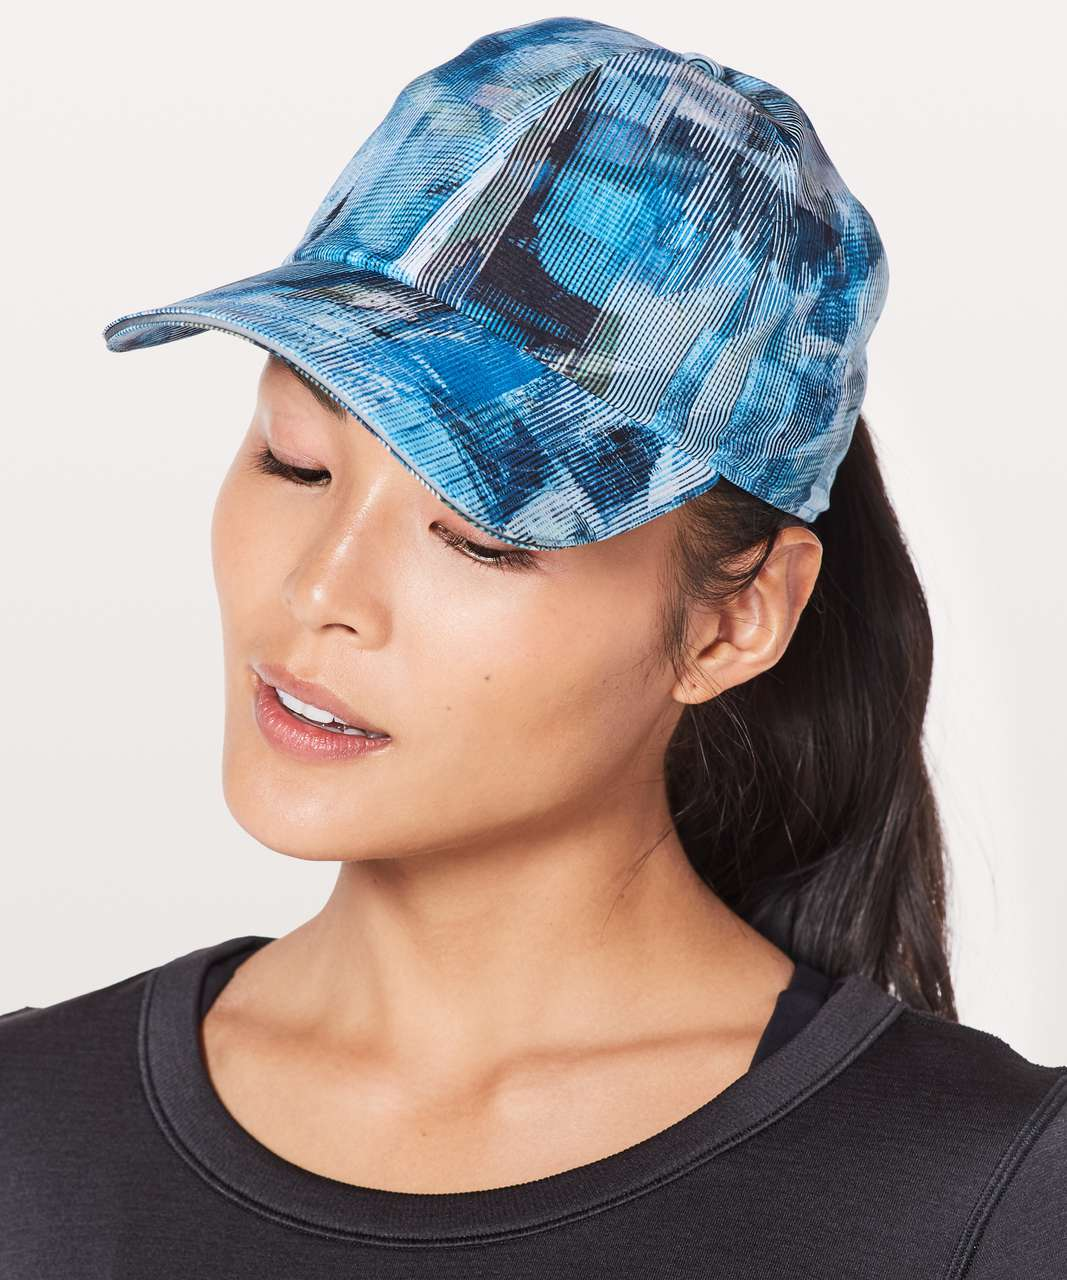 Lululemon Baller Hat Run - Sun Dazed Multi Blue